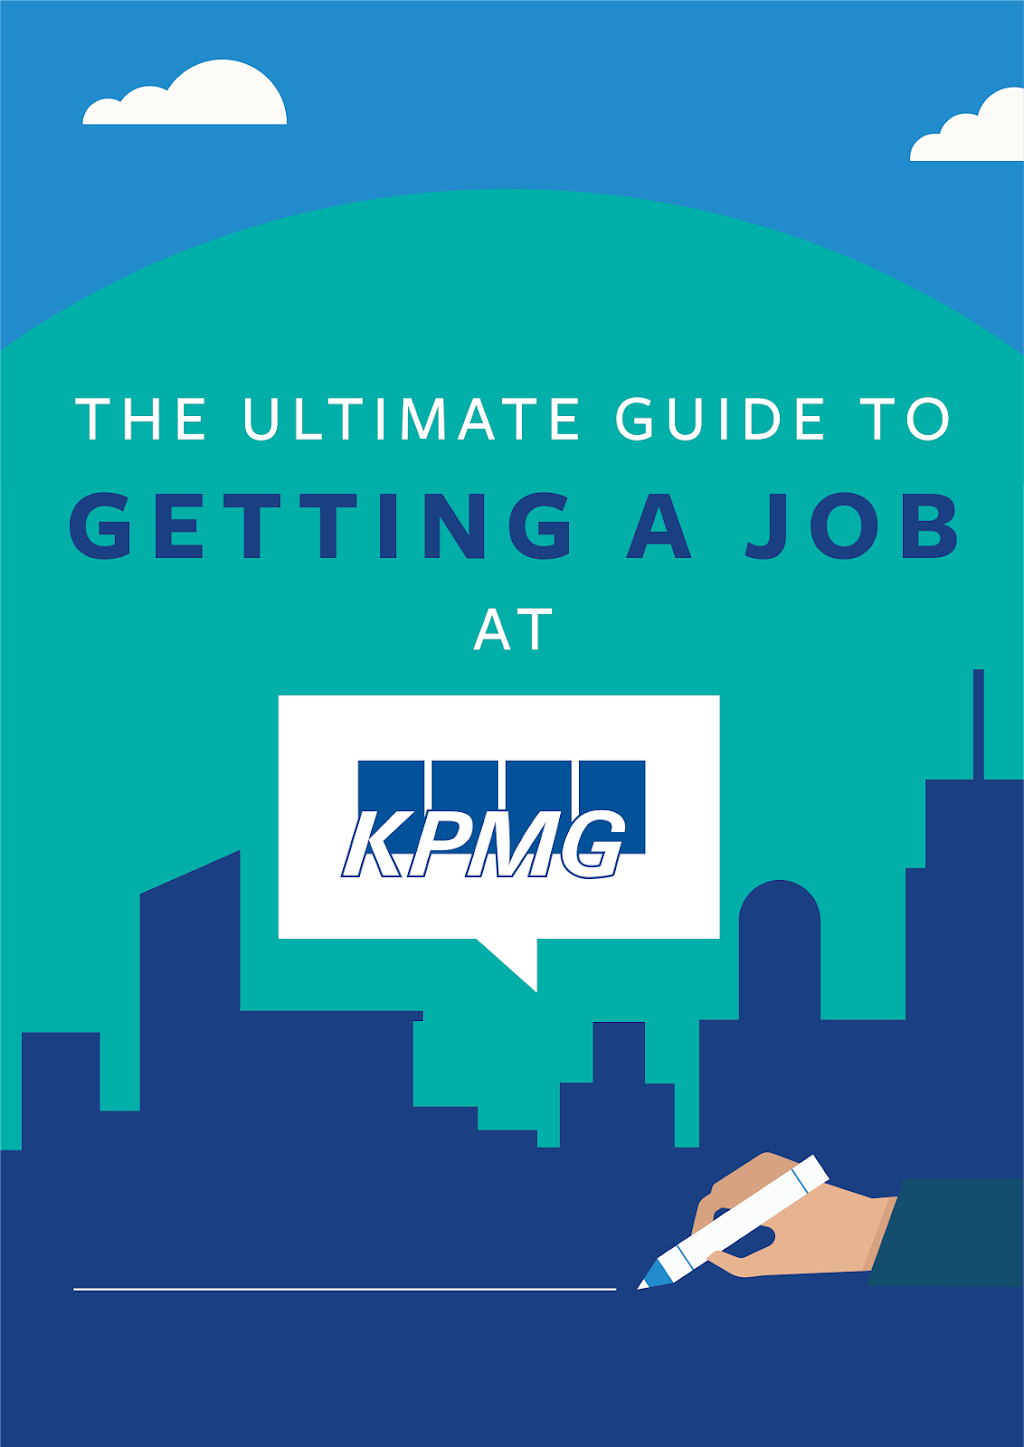 Ebook Cover: The Ultimate Guide to Getting a Job at KPMG